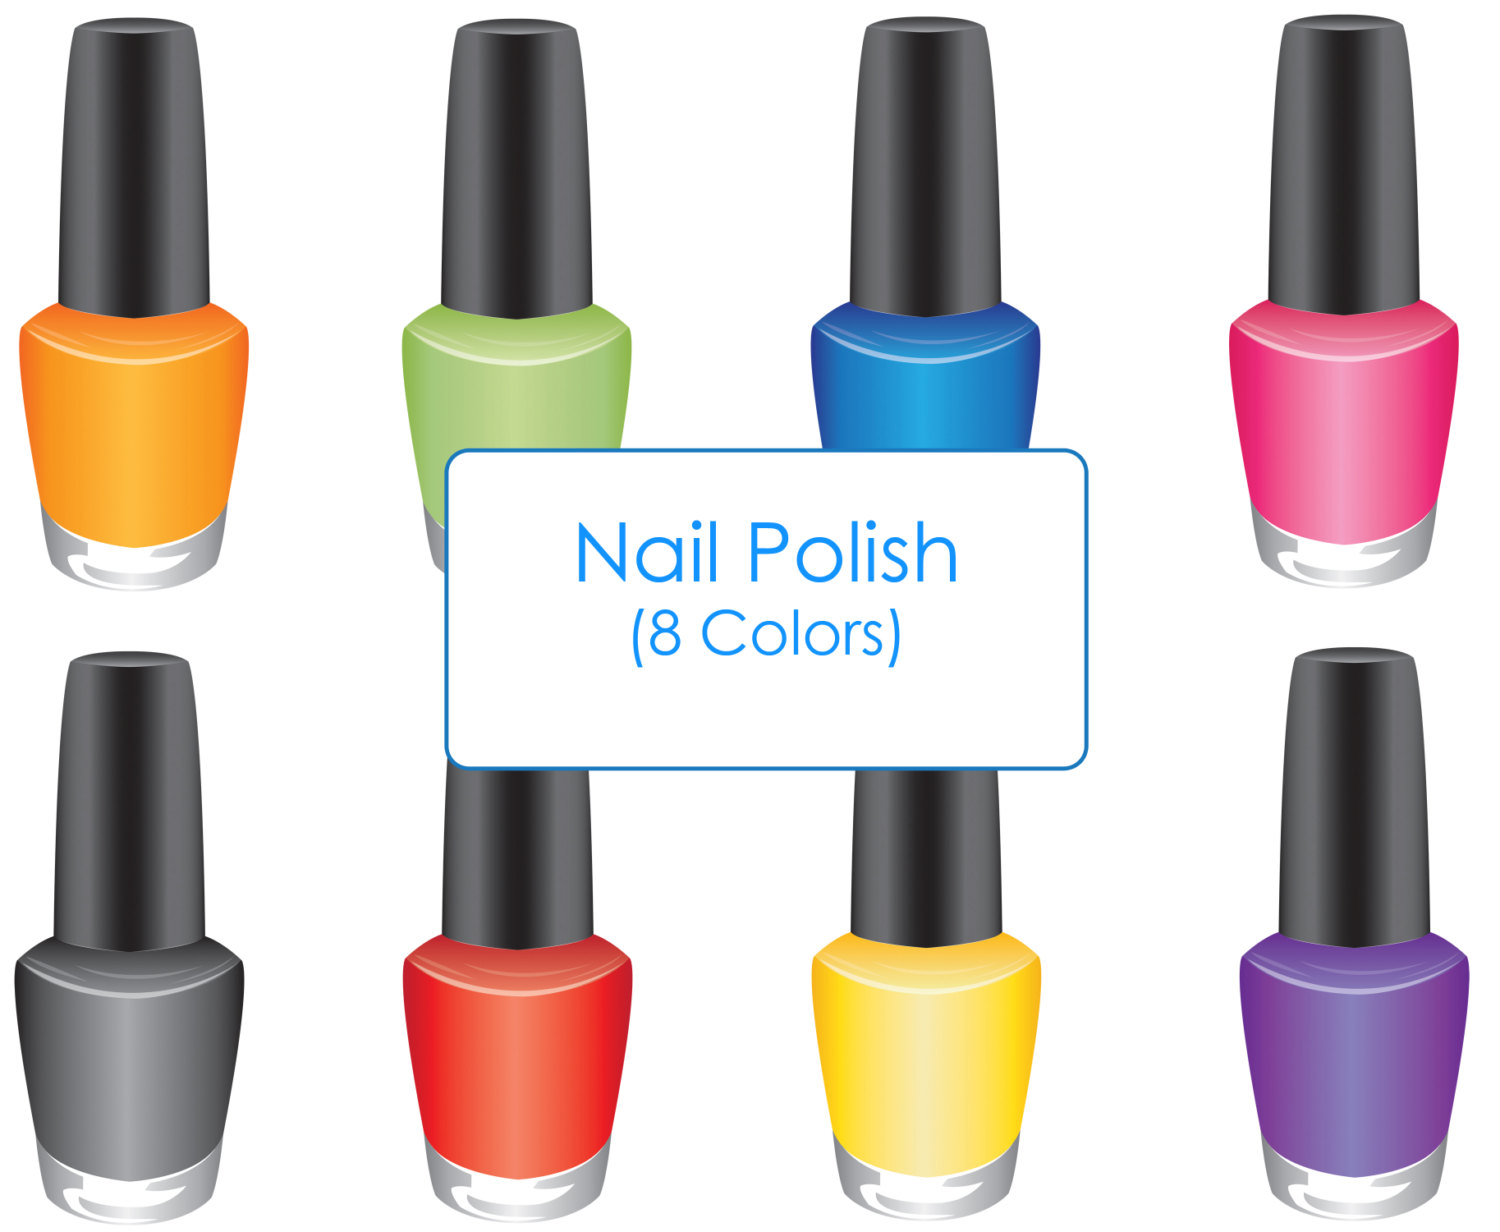 Clip Art Nail Polish Clip Art nail polish clipart kid digital download discoveries for cosmetic from easypeach